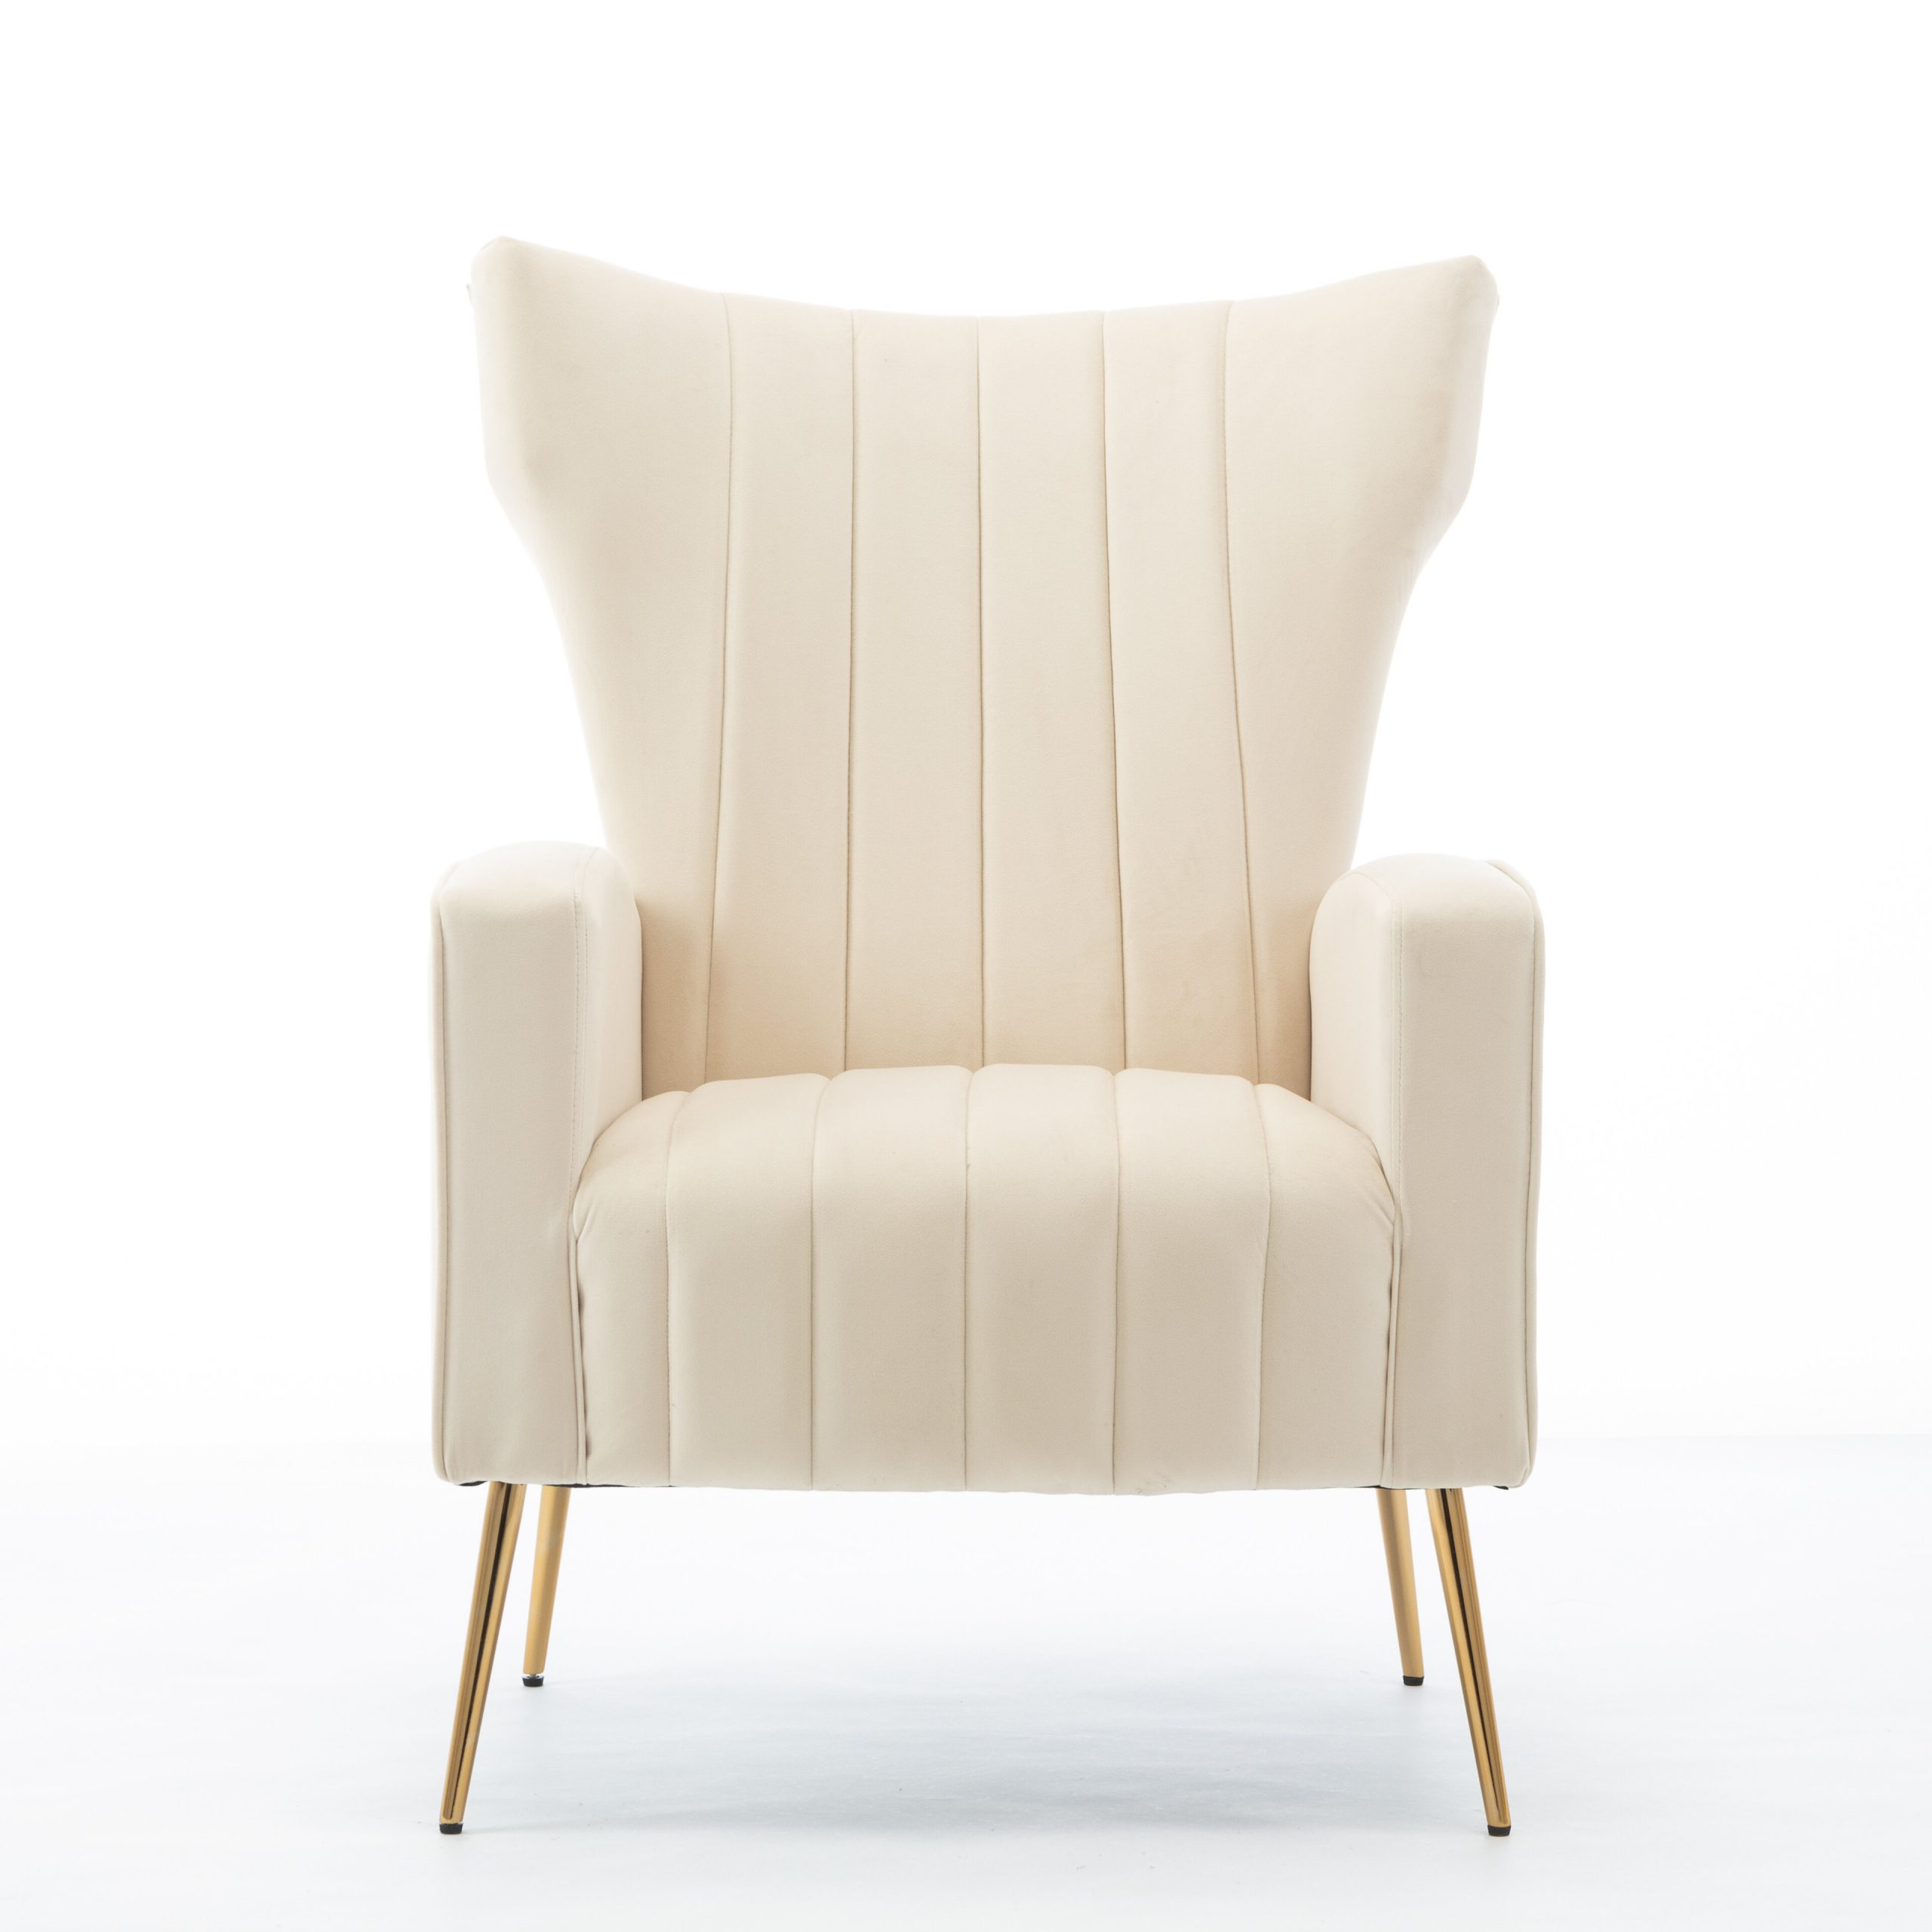 Artemis Knitted Armchair Pertaining To Favorite Artemi Barrel Chair And Ottoman Sets (View 12 of 20)